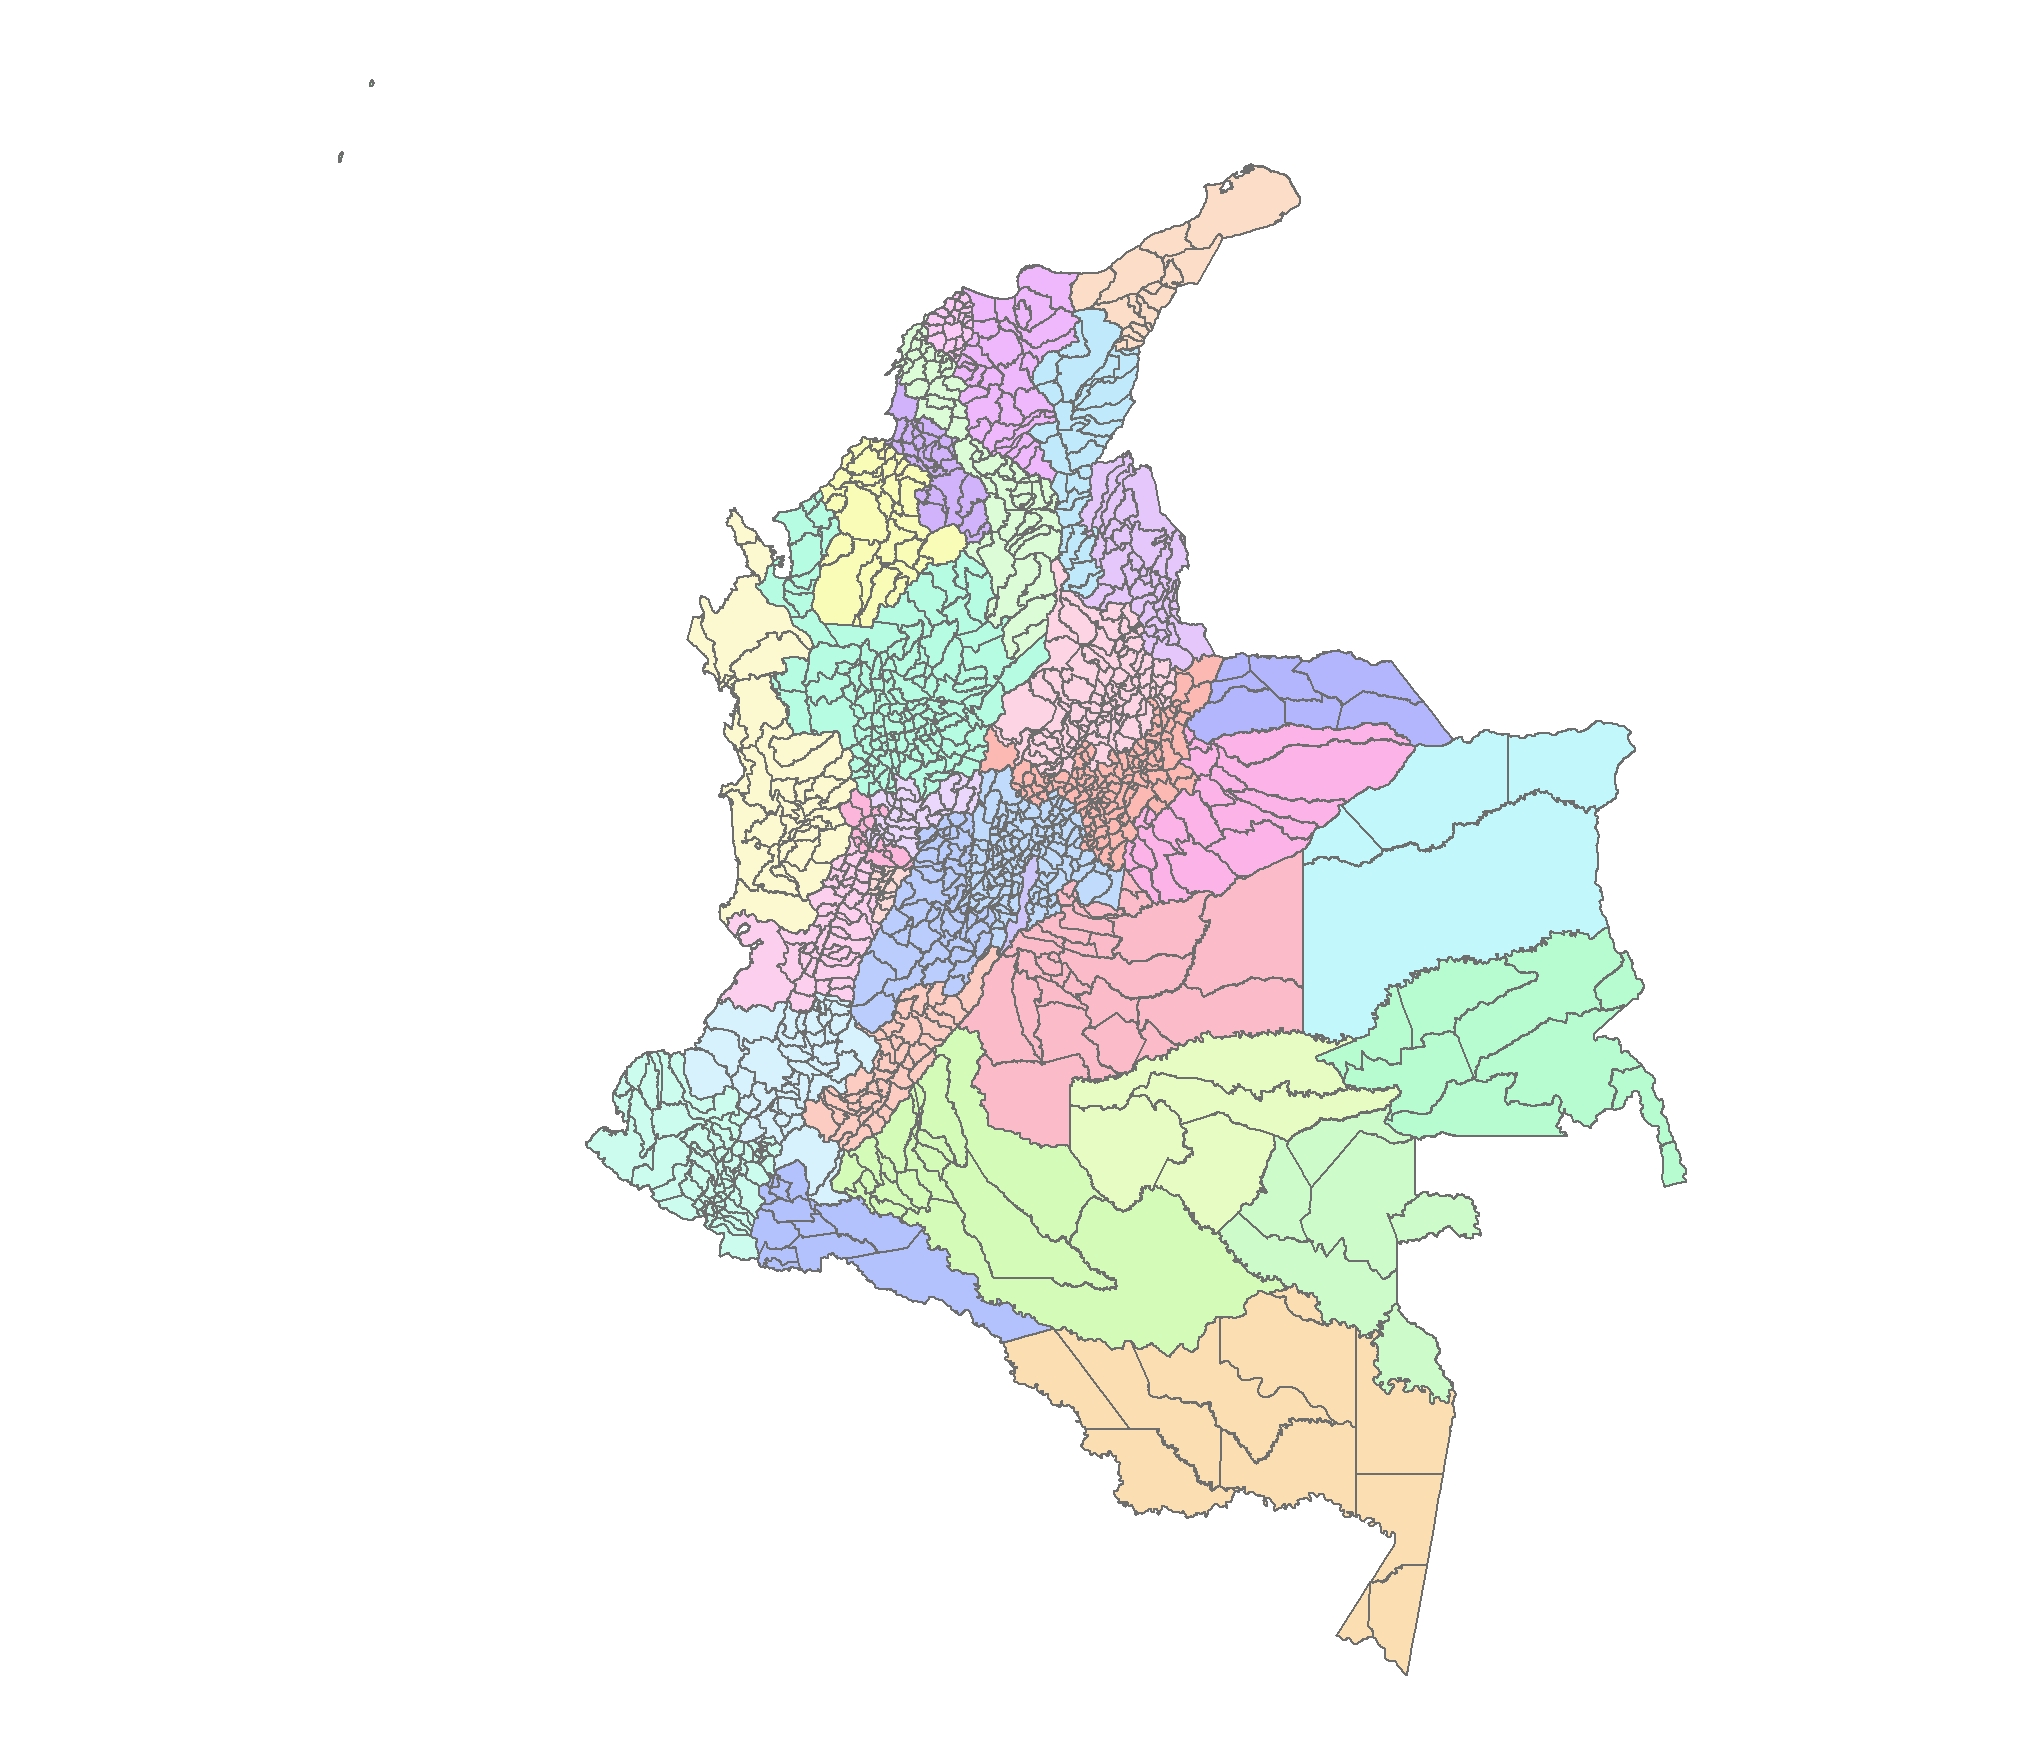 Datos de colombia shapefile dwg kmz gml etc for Convert dwg to kmz